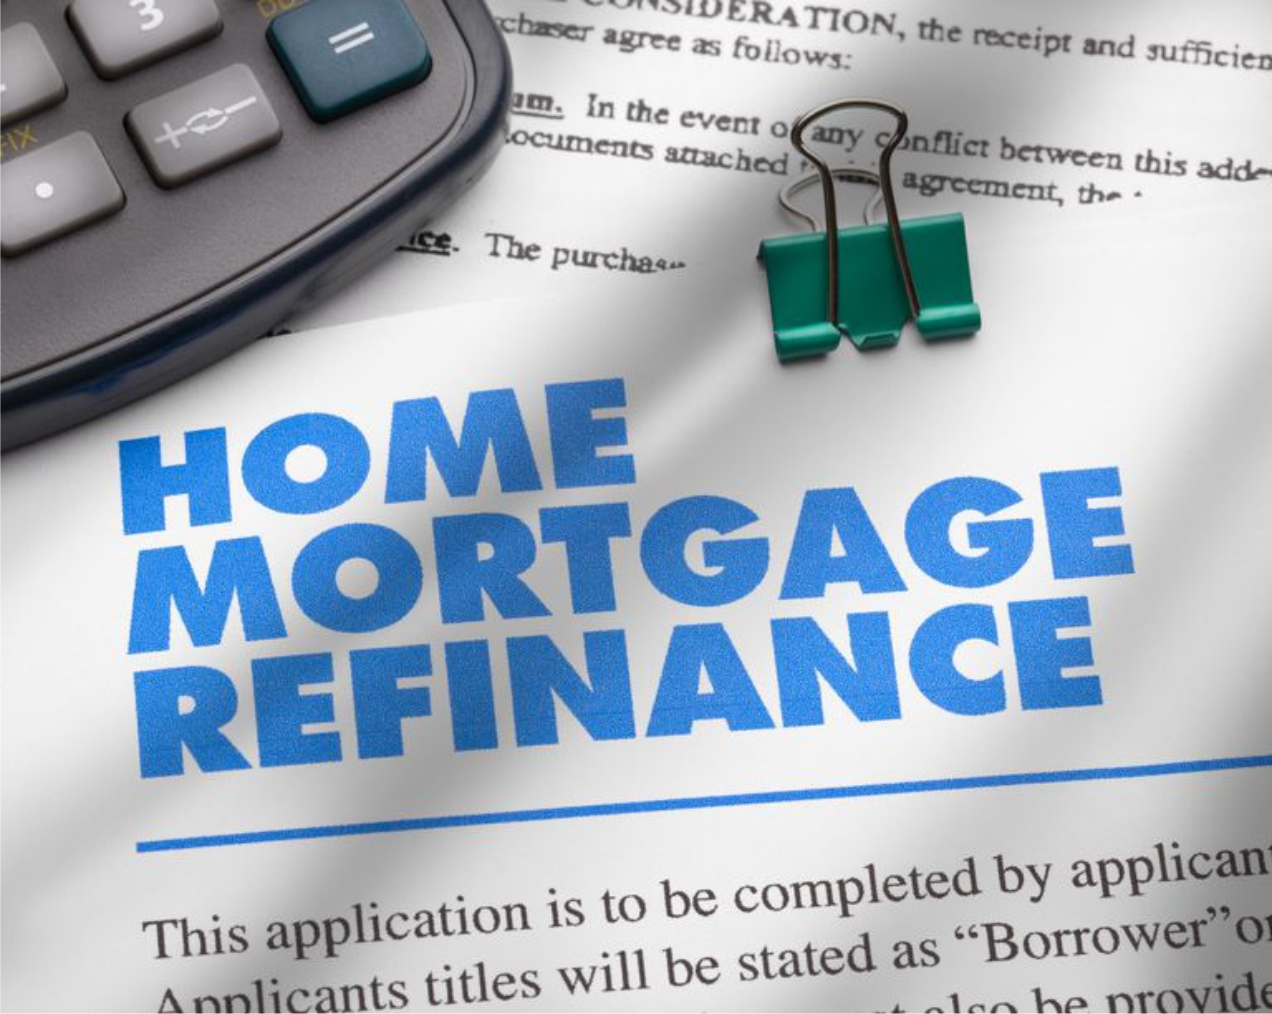 Re-financing may be an option